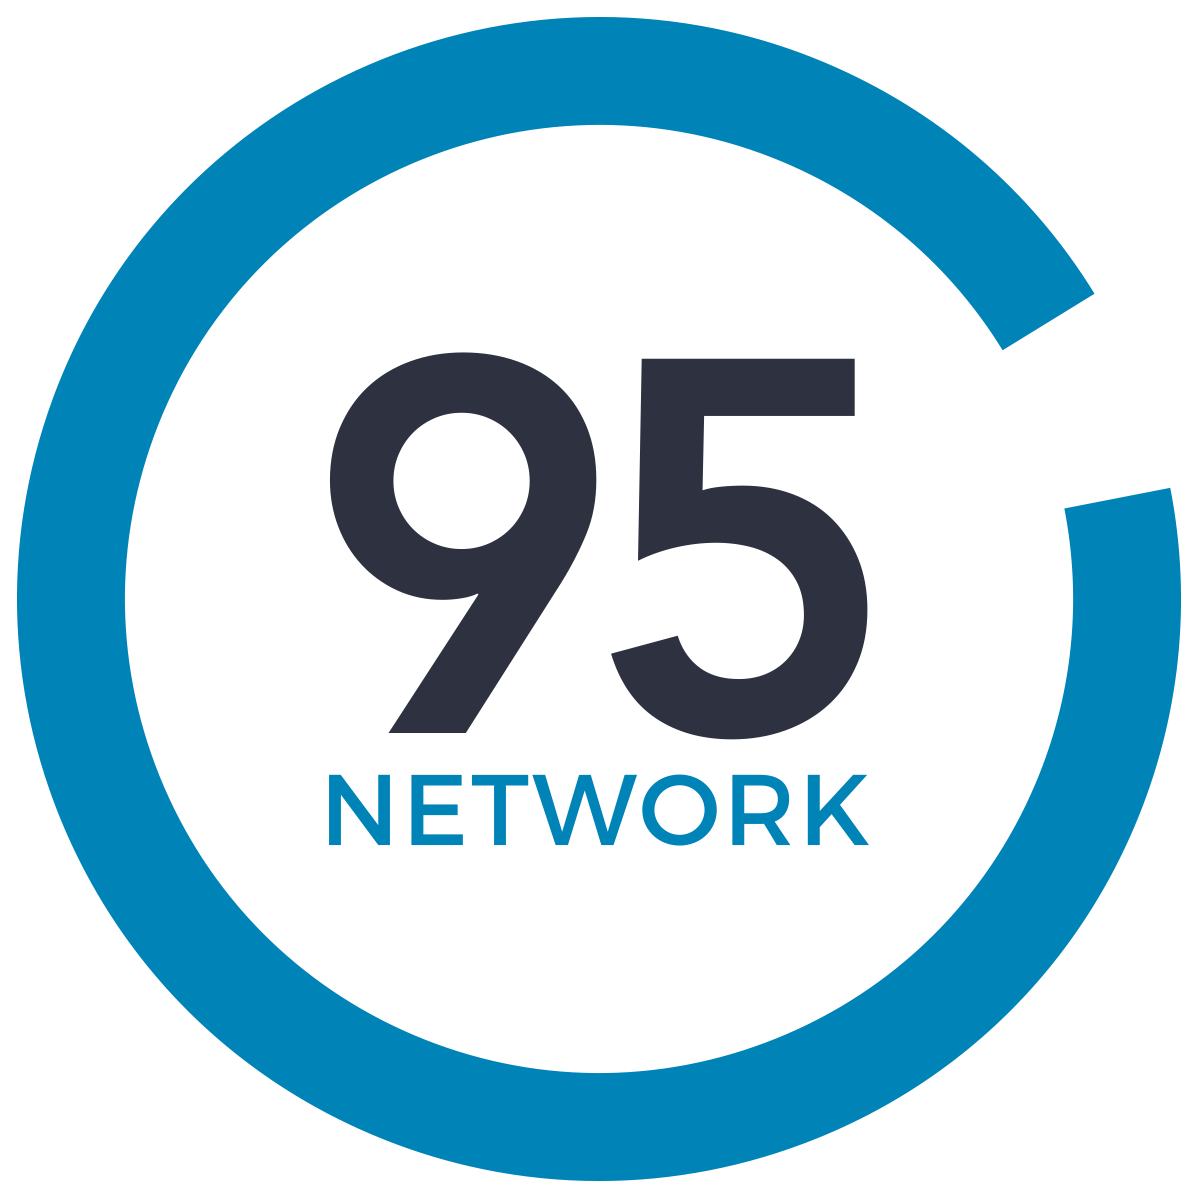 Helping small and medium size churches reach their redemptive potential - 95network